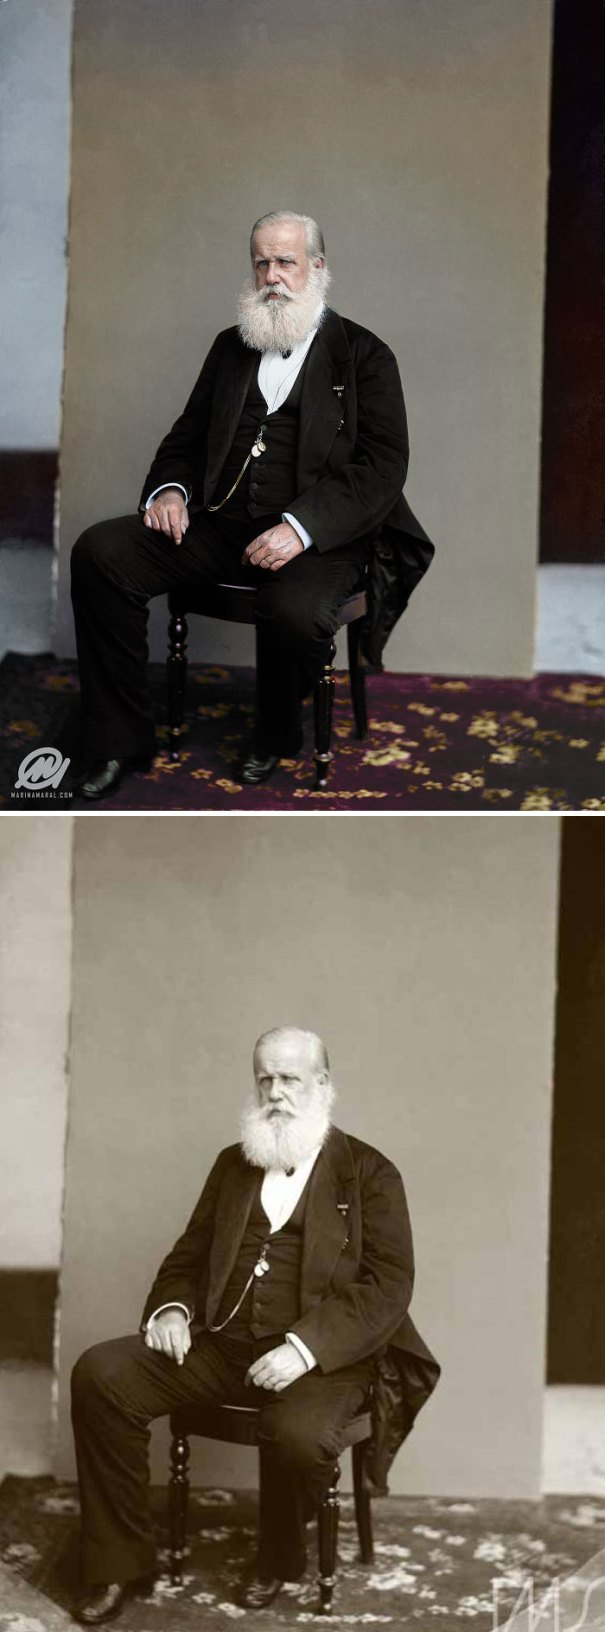 5b6d3b8b3d10d-colorized-historic-photos-marina-amaral-55-5b6bda3457531__700 This Artist Colorizes Old Black & White Photos, And They Will Change The Way People Imagine History Photography Random